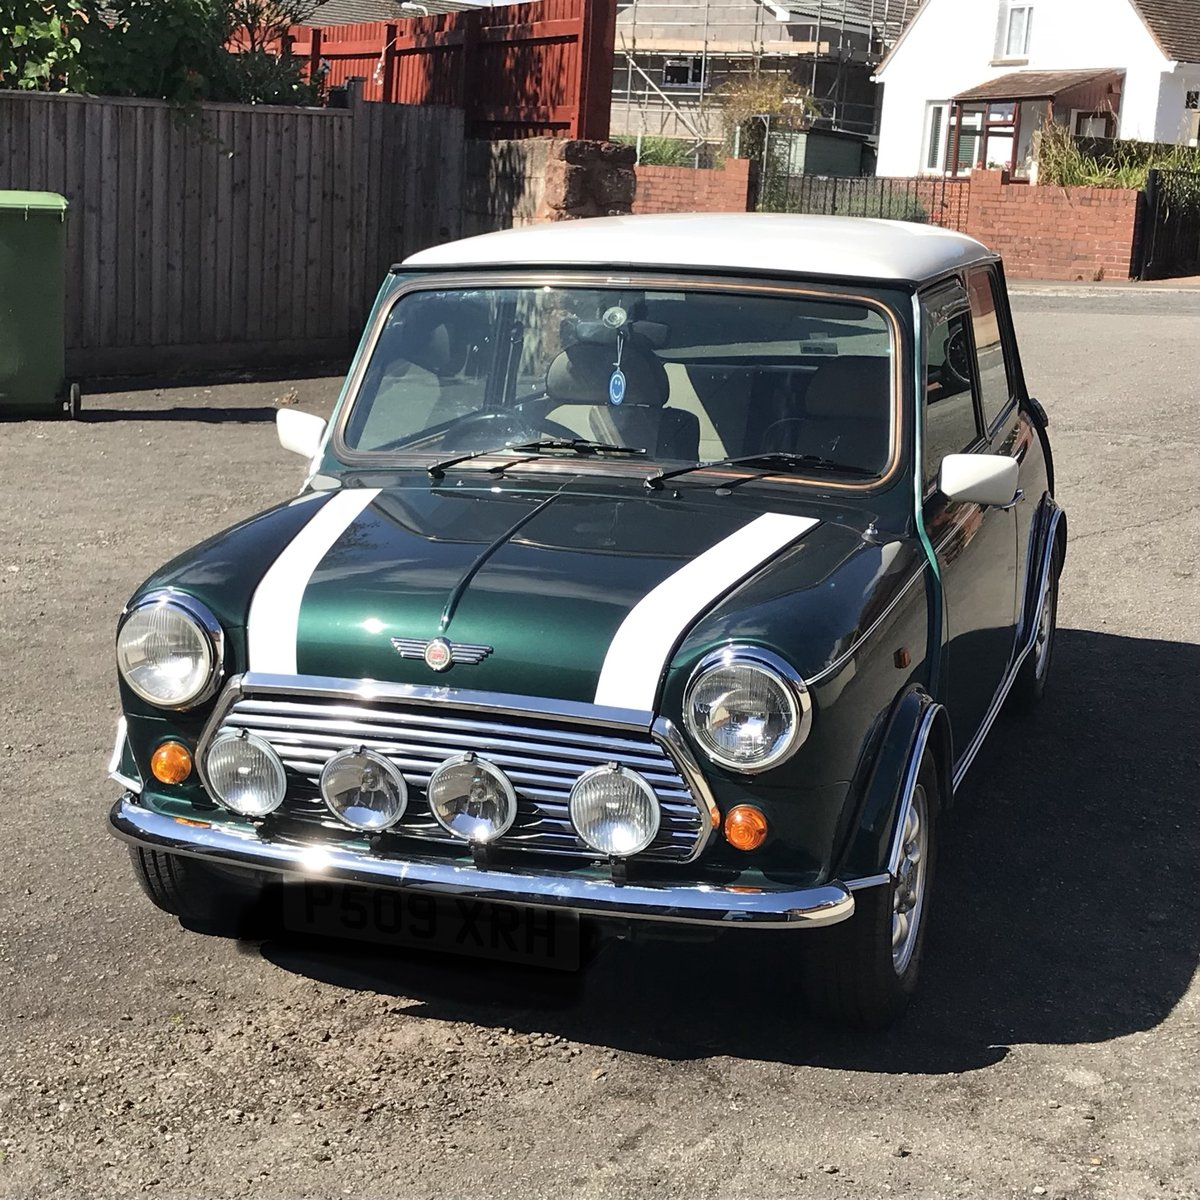 1996 Immaculately Presented Little Car Reluctant Sale For Sale (picture 1 of 5)